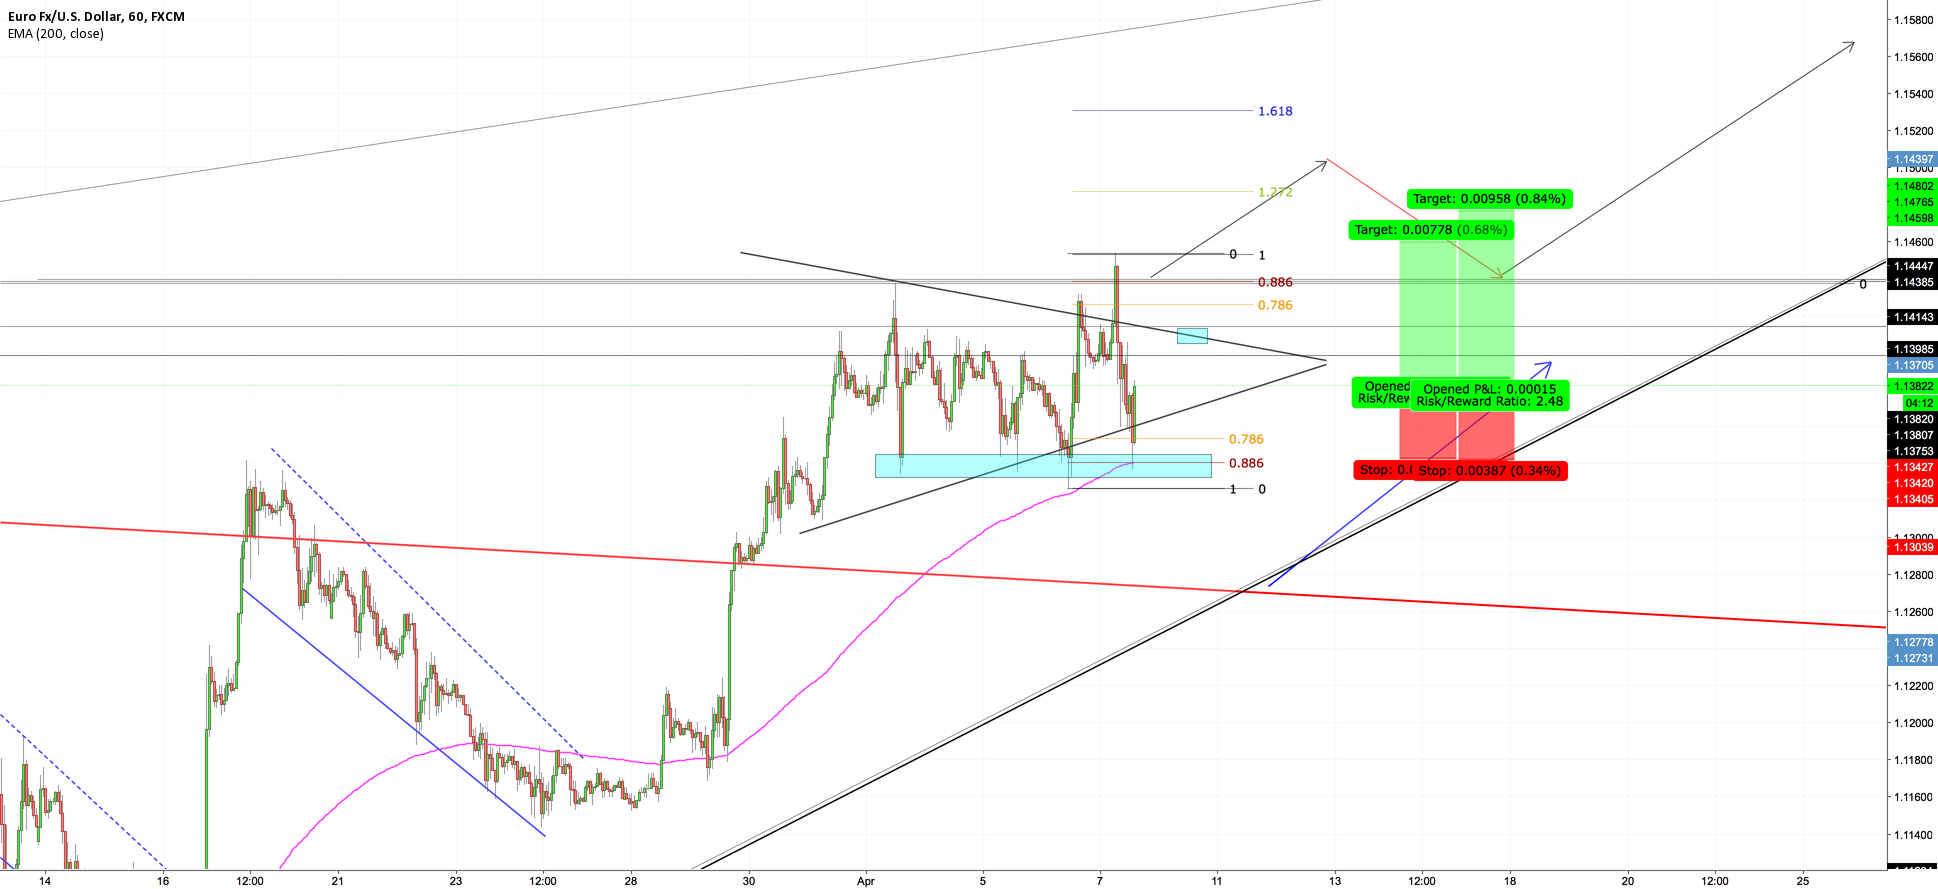 EURUSD -- INTRADAY